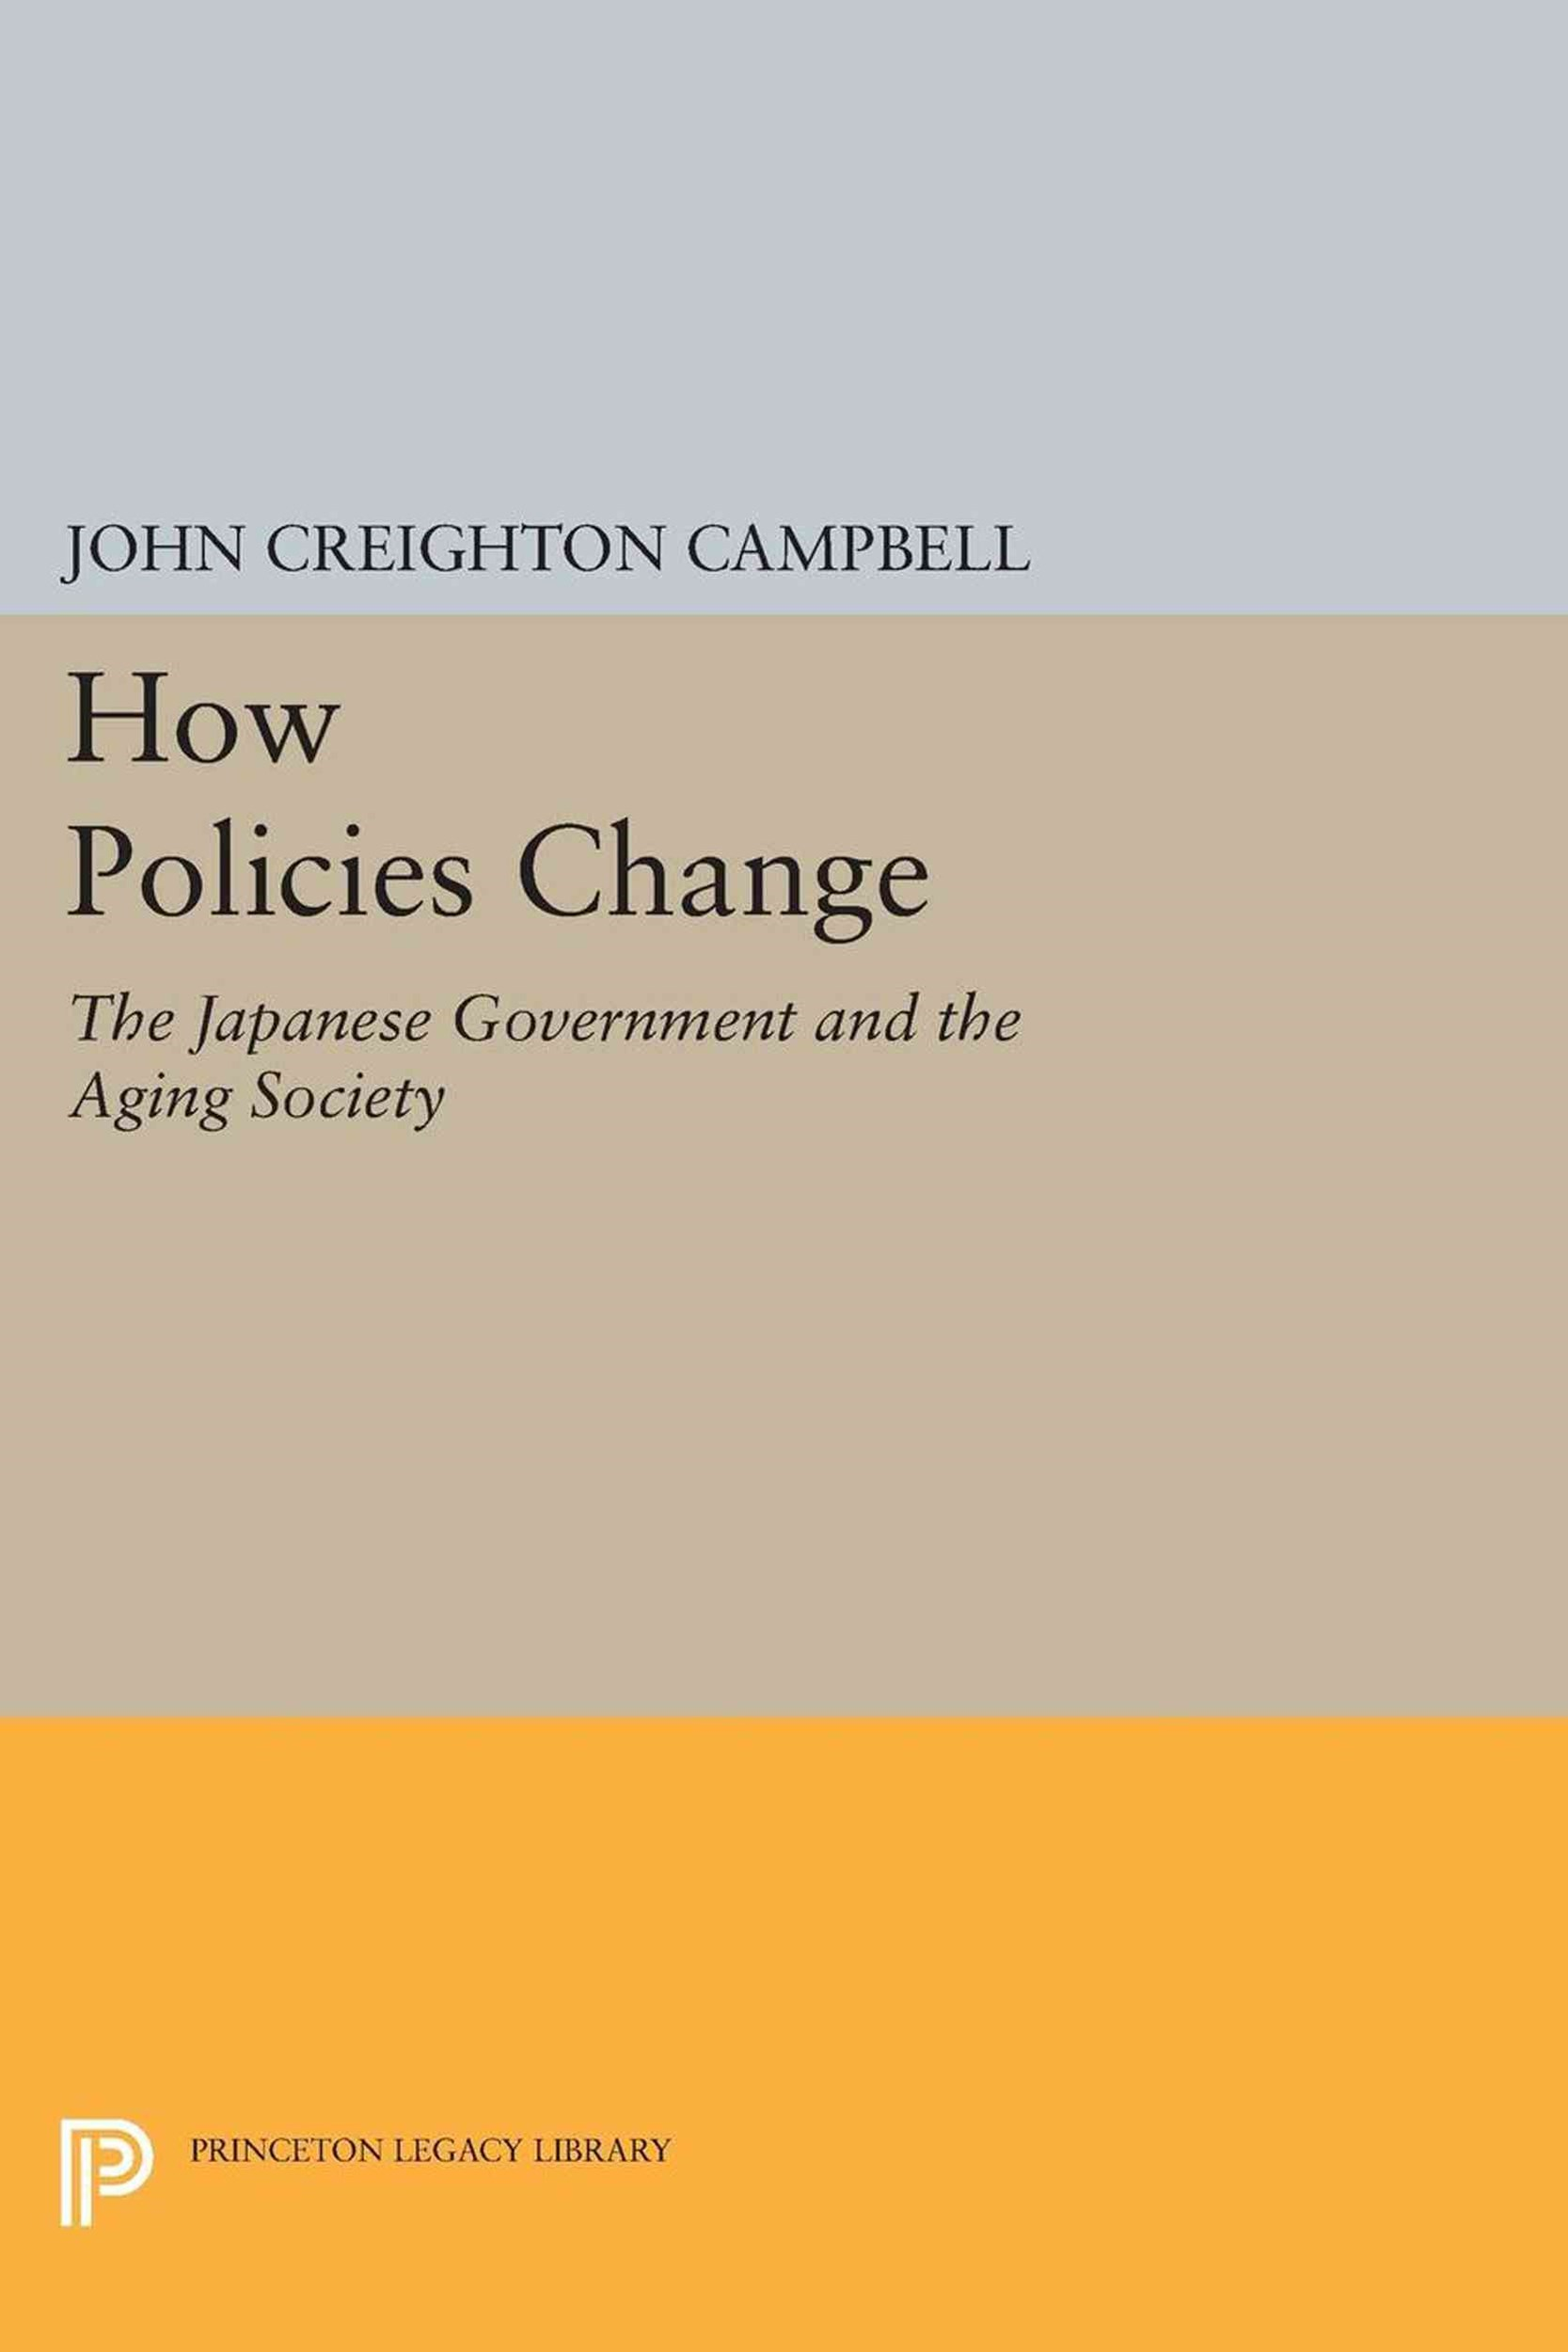 How Policies Change